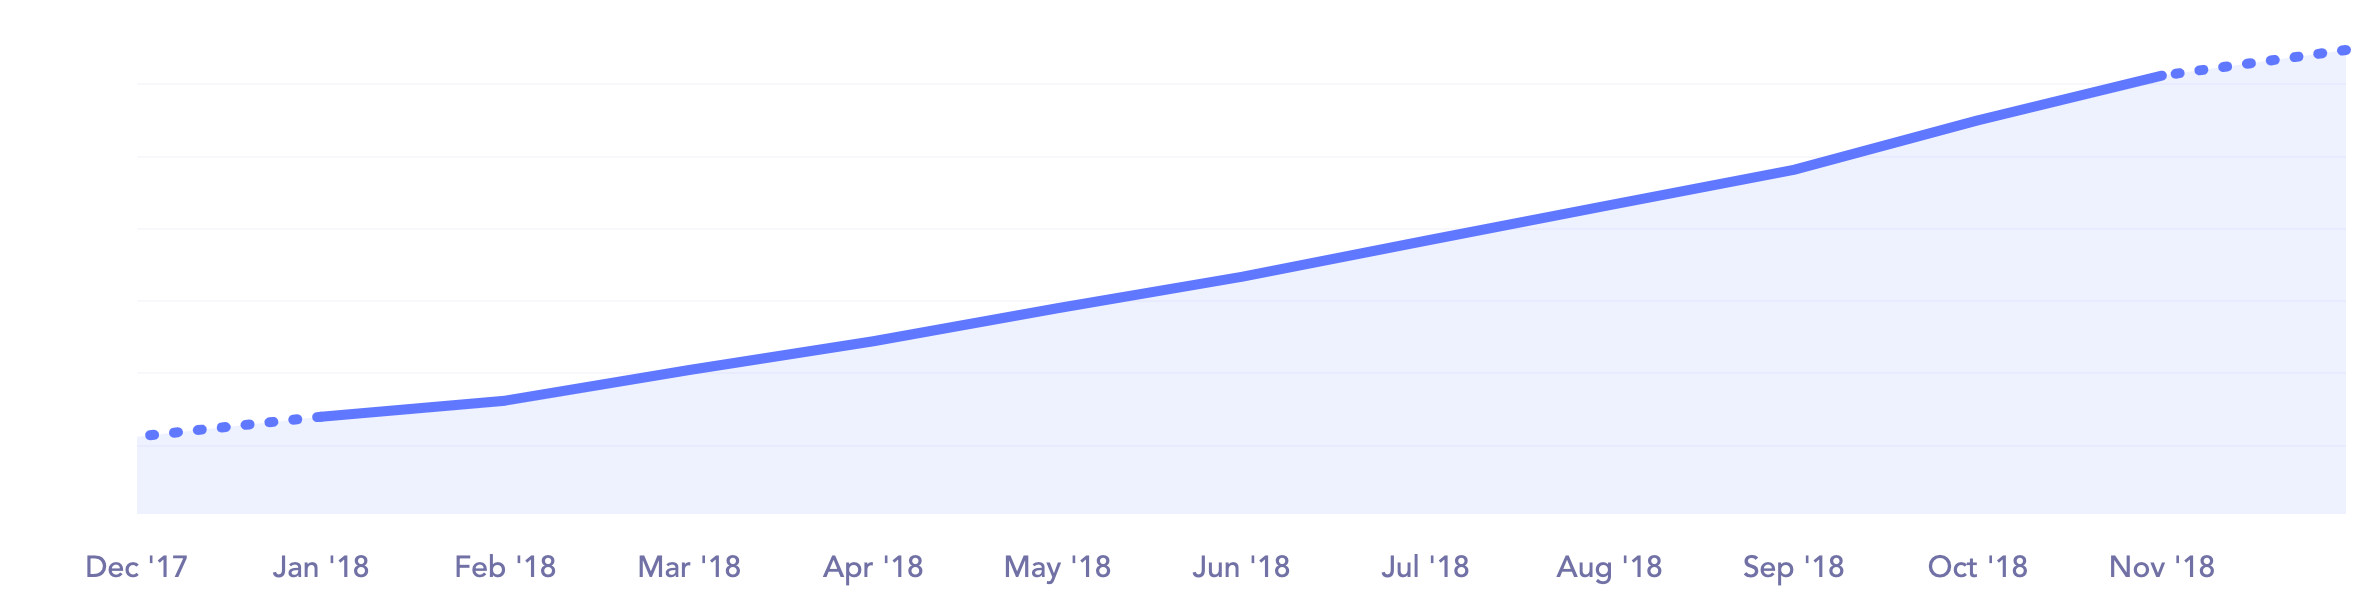 Active subscriptions from Baremetrics (customer growth)